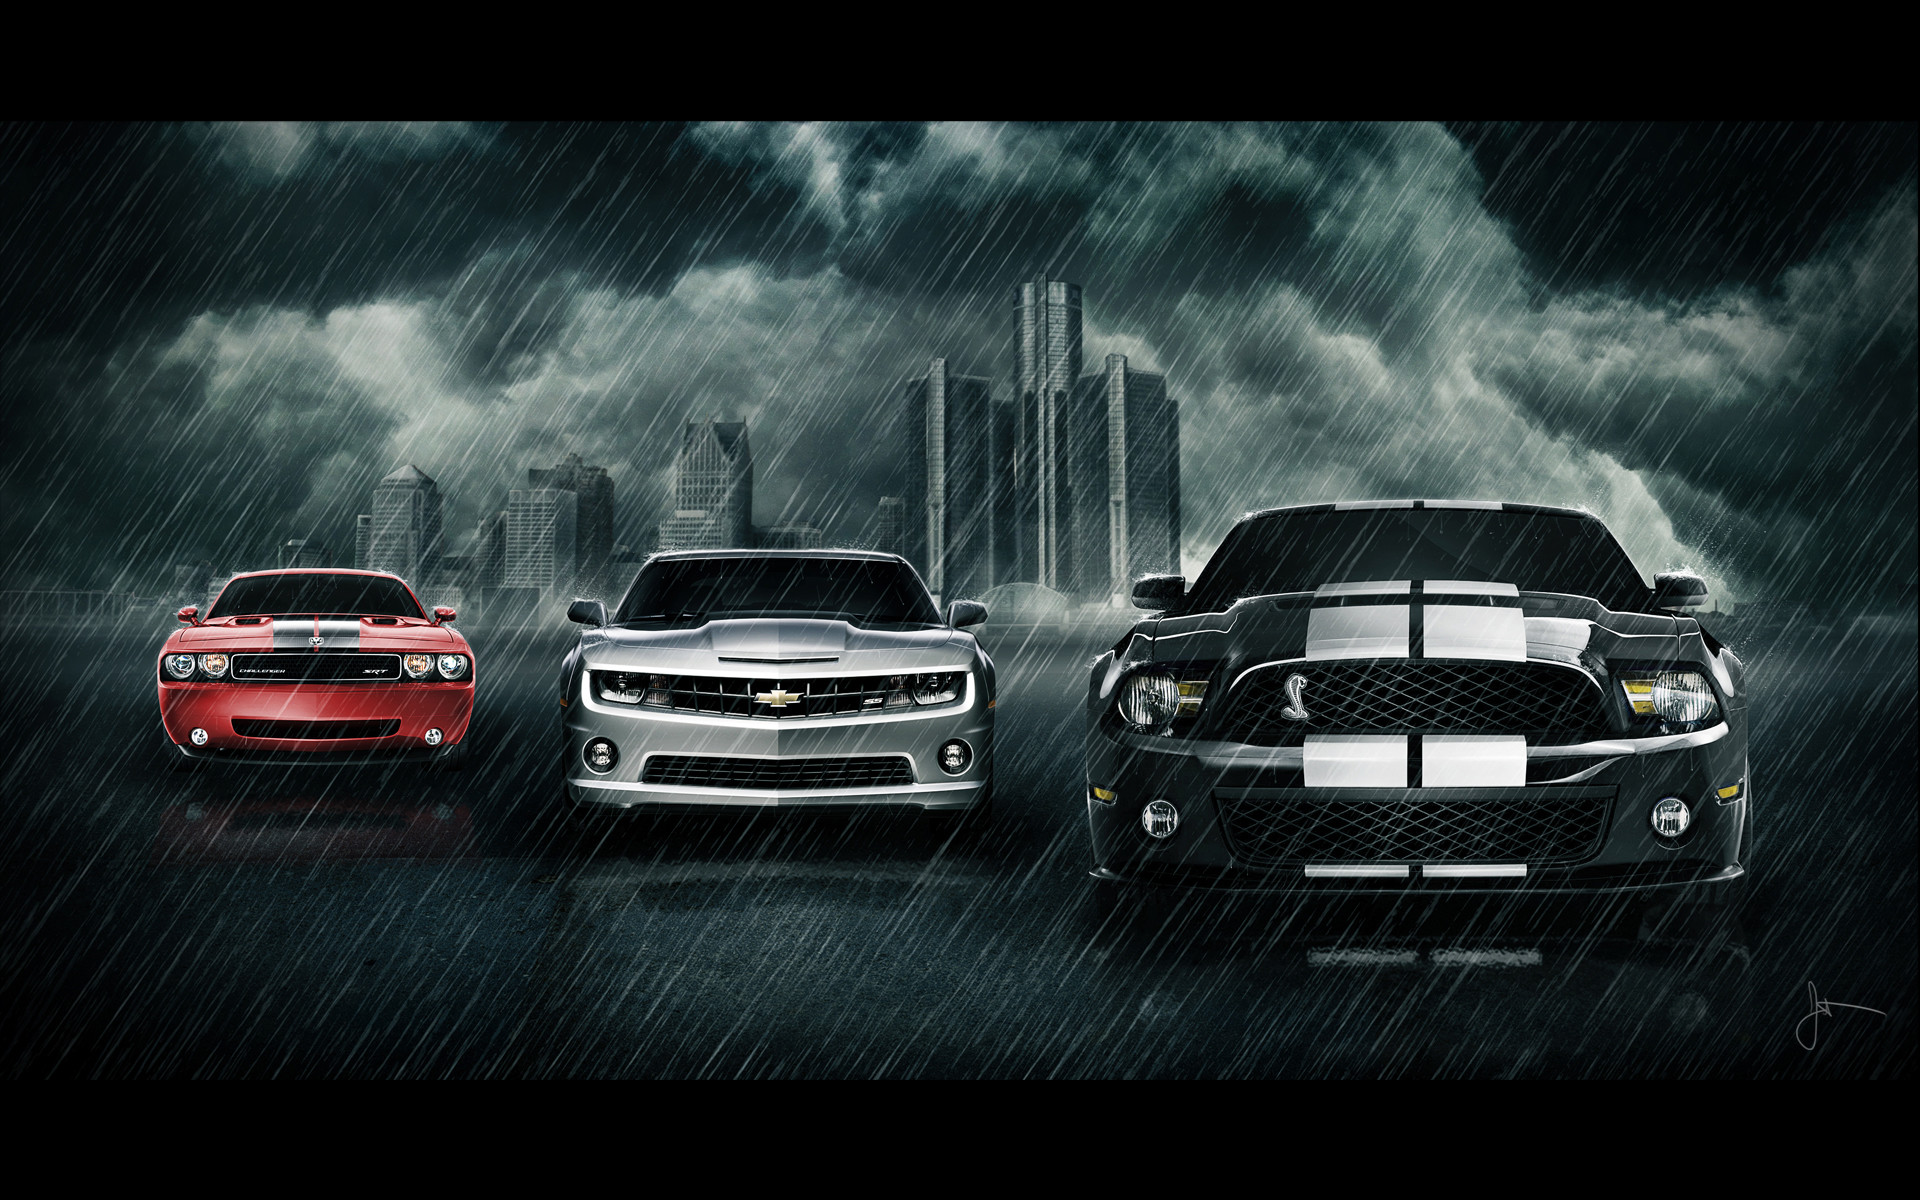 colorful pictures of muscle cars   Wallpapers 1024×768 » Cars Old American Muscle  Car Free Wallpaper